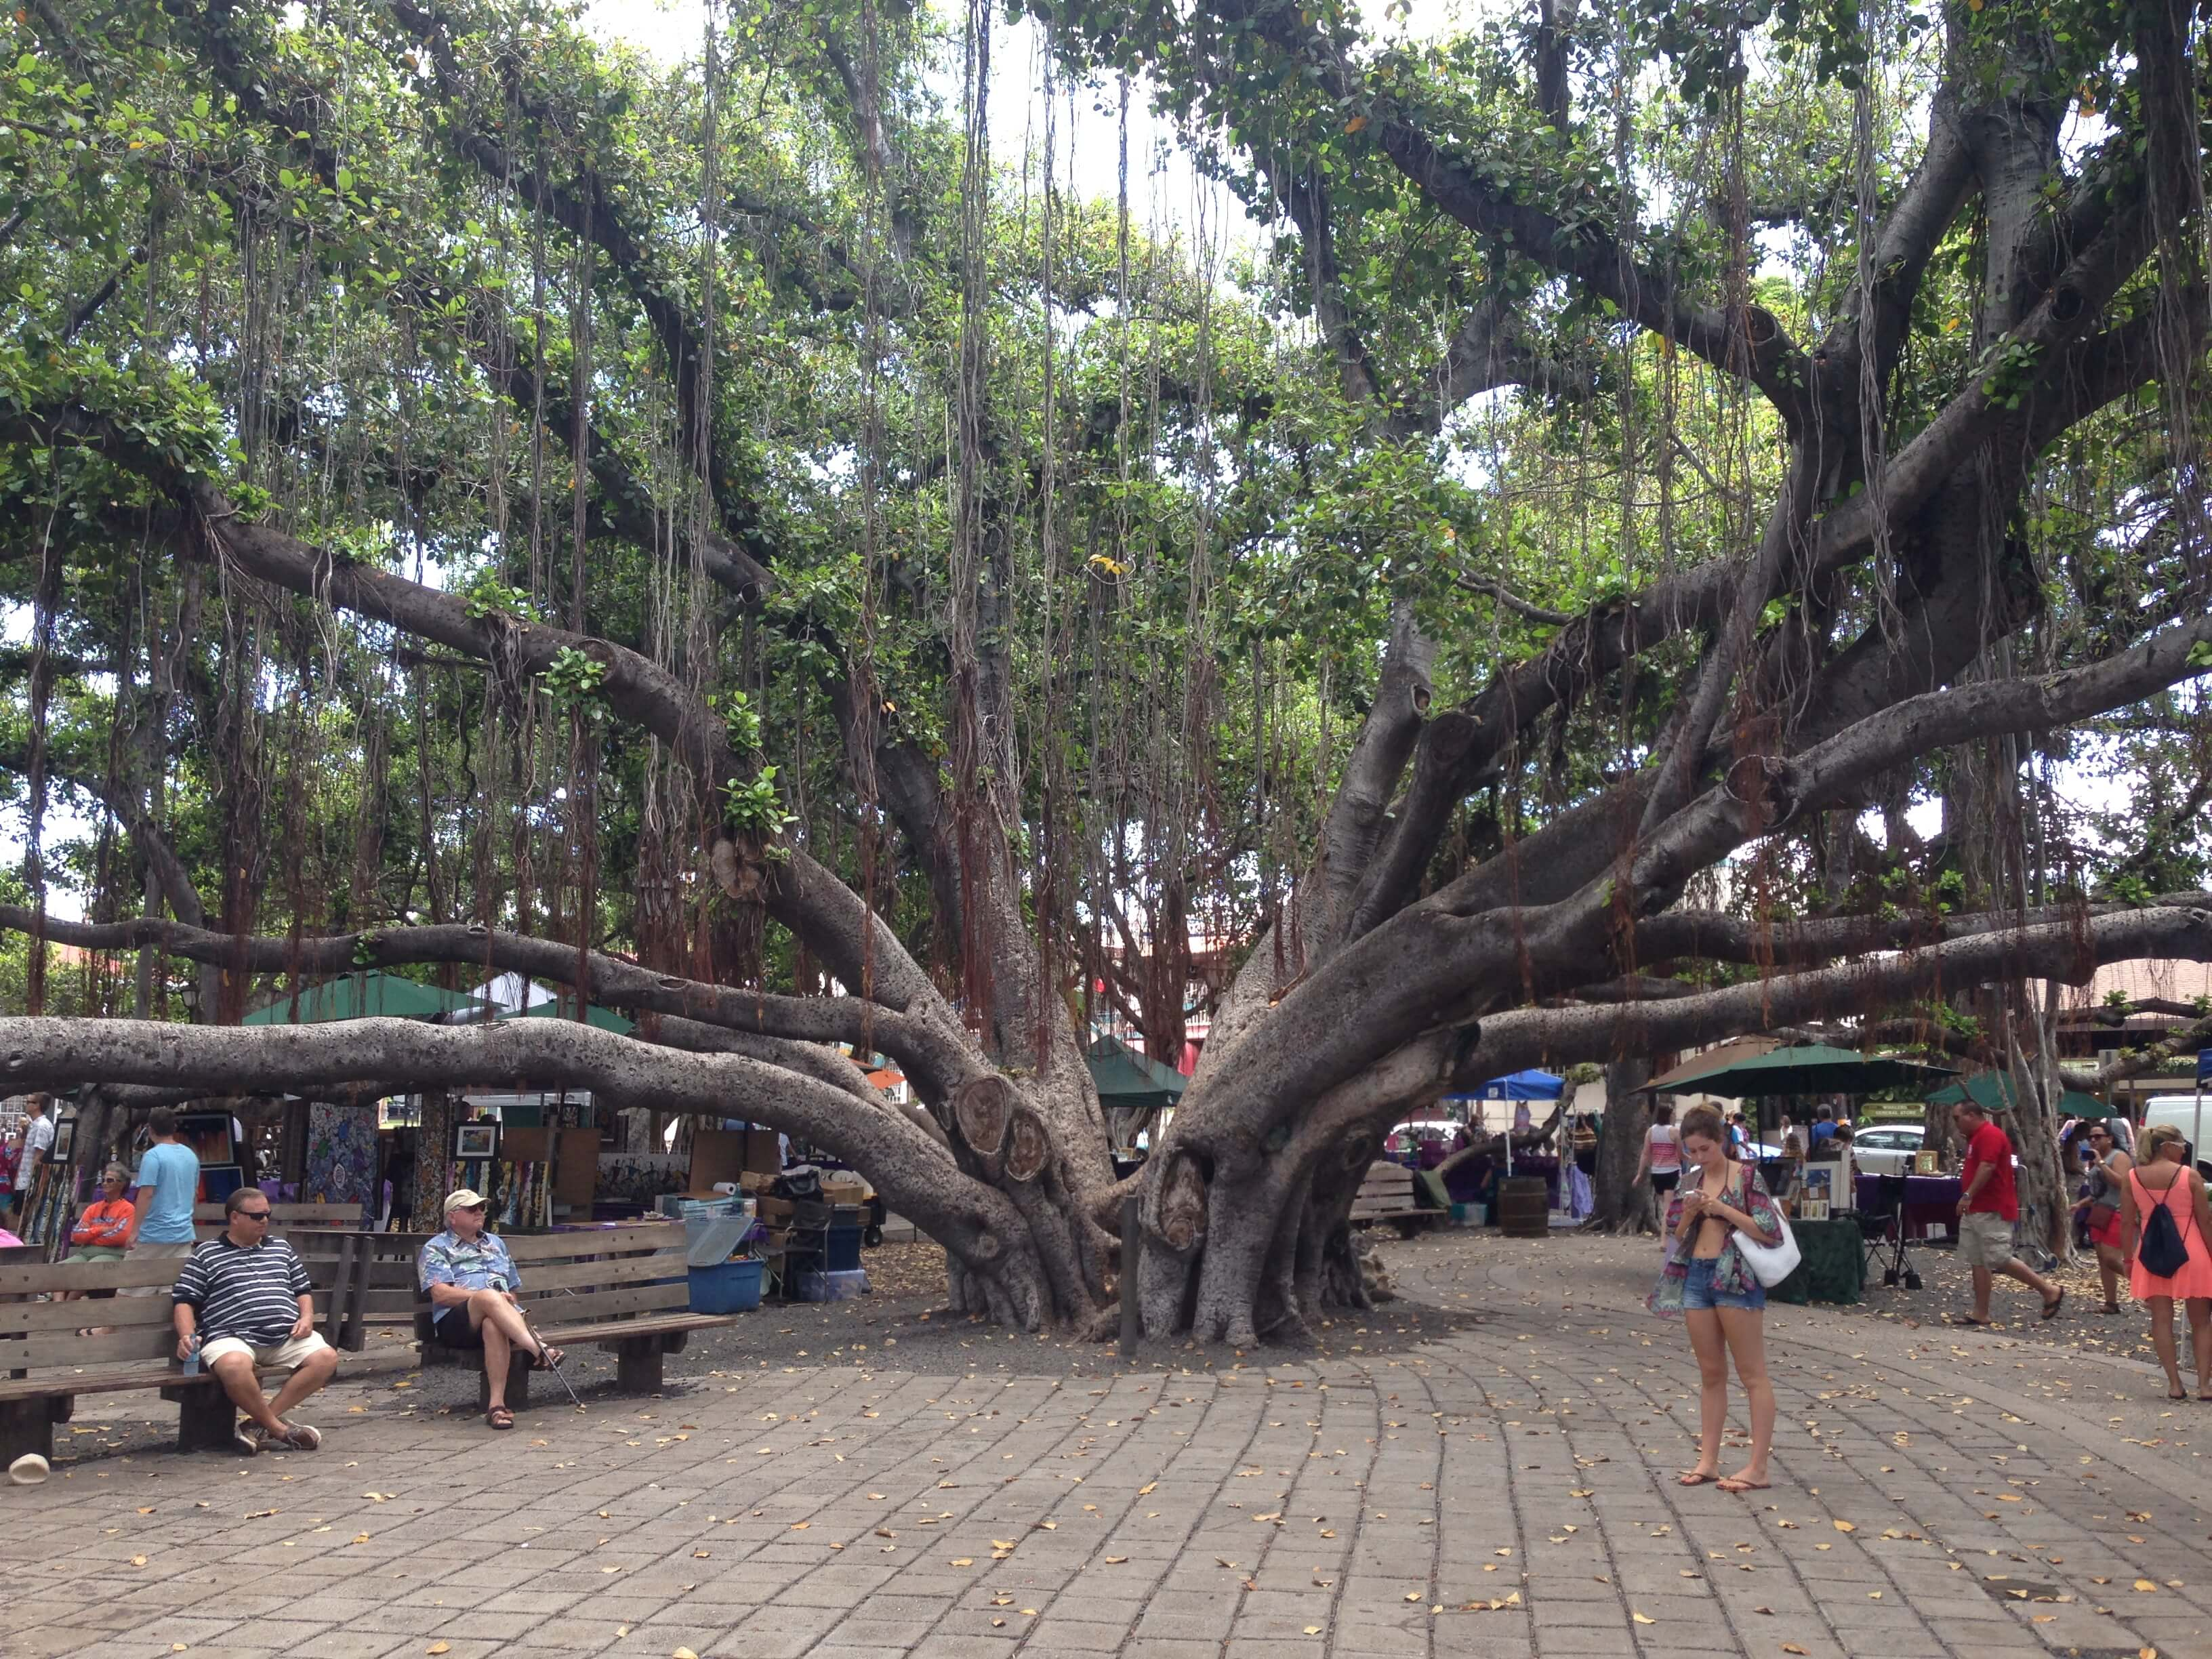 The center of Lahaina's town square and the banyan tree